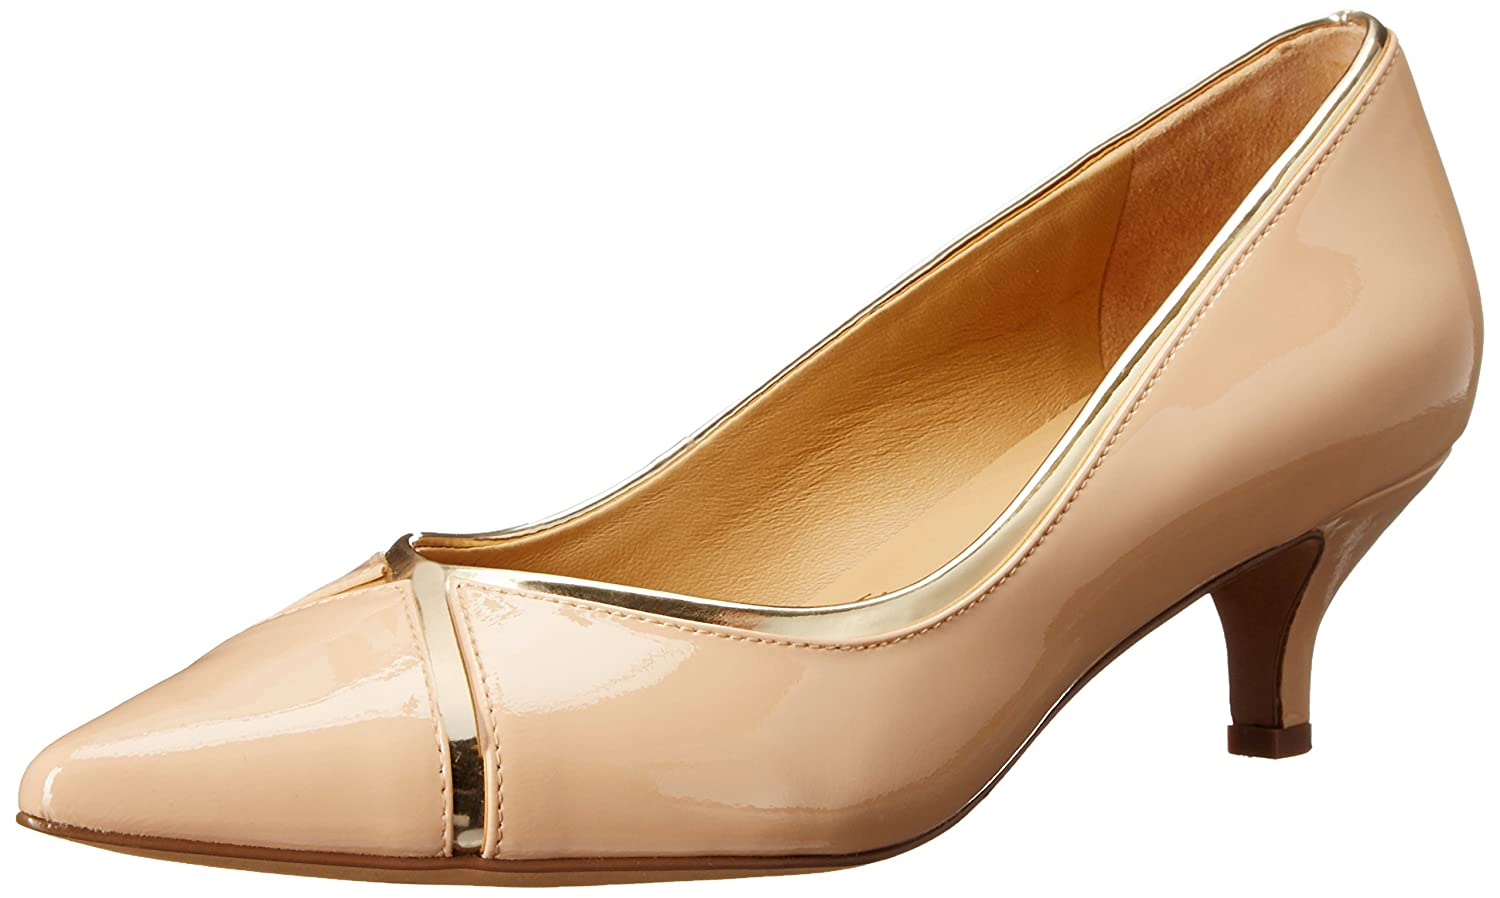 Trotters Women's Kelsey Dress Pump B011EZIEFW 9.5 B(M) US|Nude/Gold